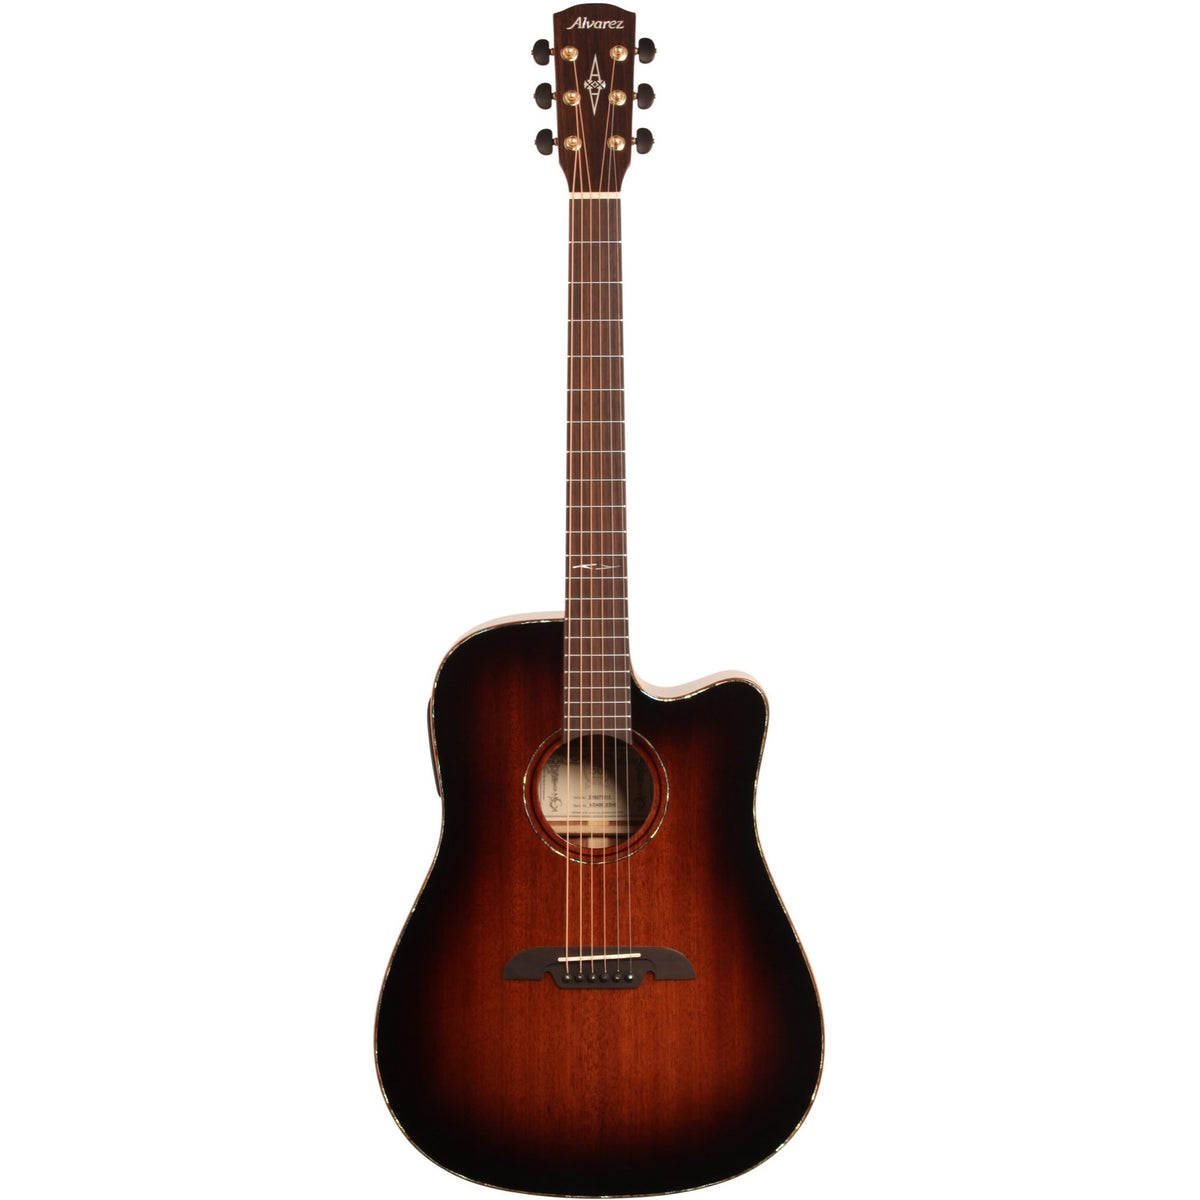 Alvarez MDA66CESHB Masterworks Dreadnought Acoustic-Electric Guitar (with Case), Sunburst